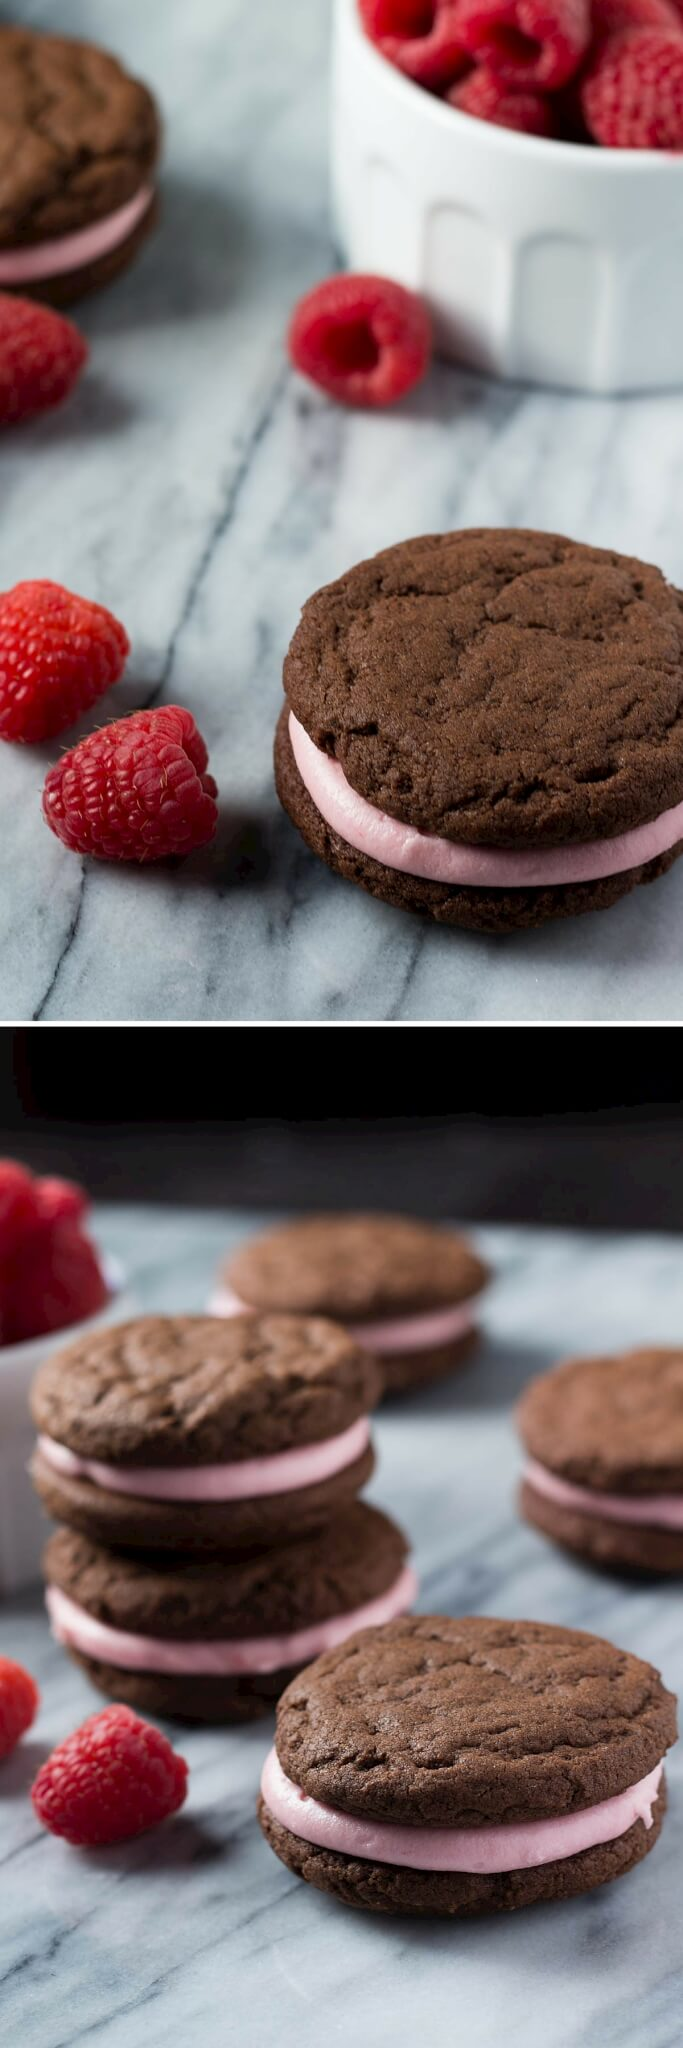 Creamy raspberry frosting sandwiched between two soft & fudgy chocolate cookies. These sandwich cookies are the perfect recipe for Valentine's!